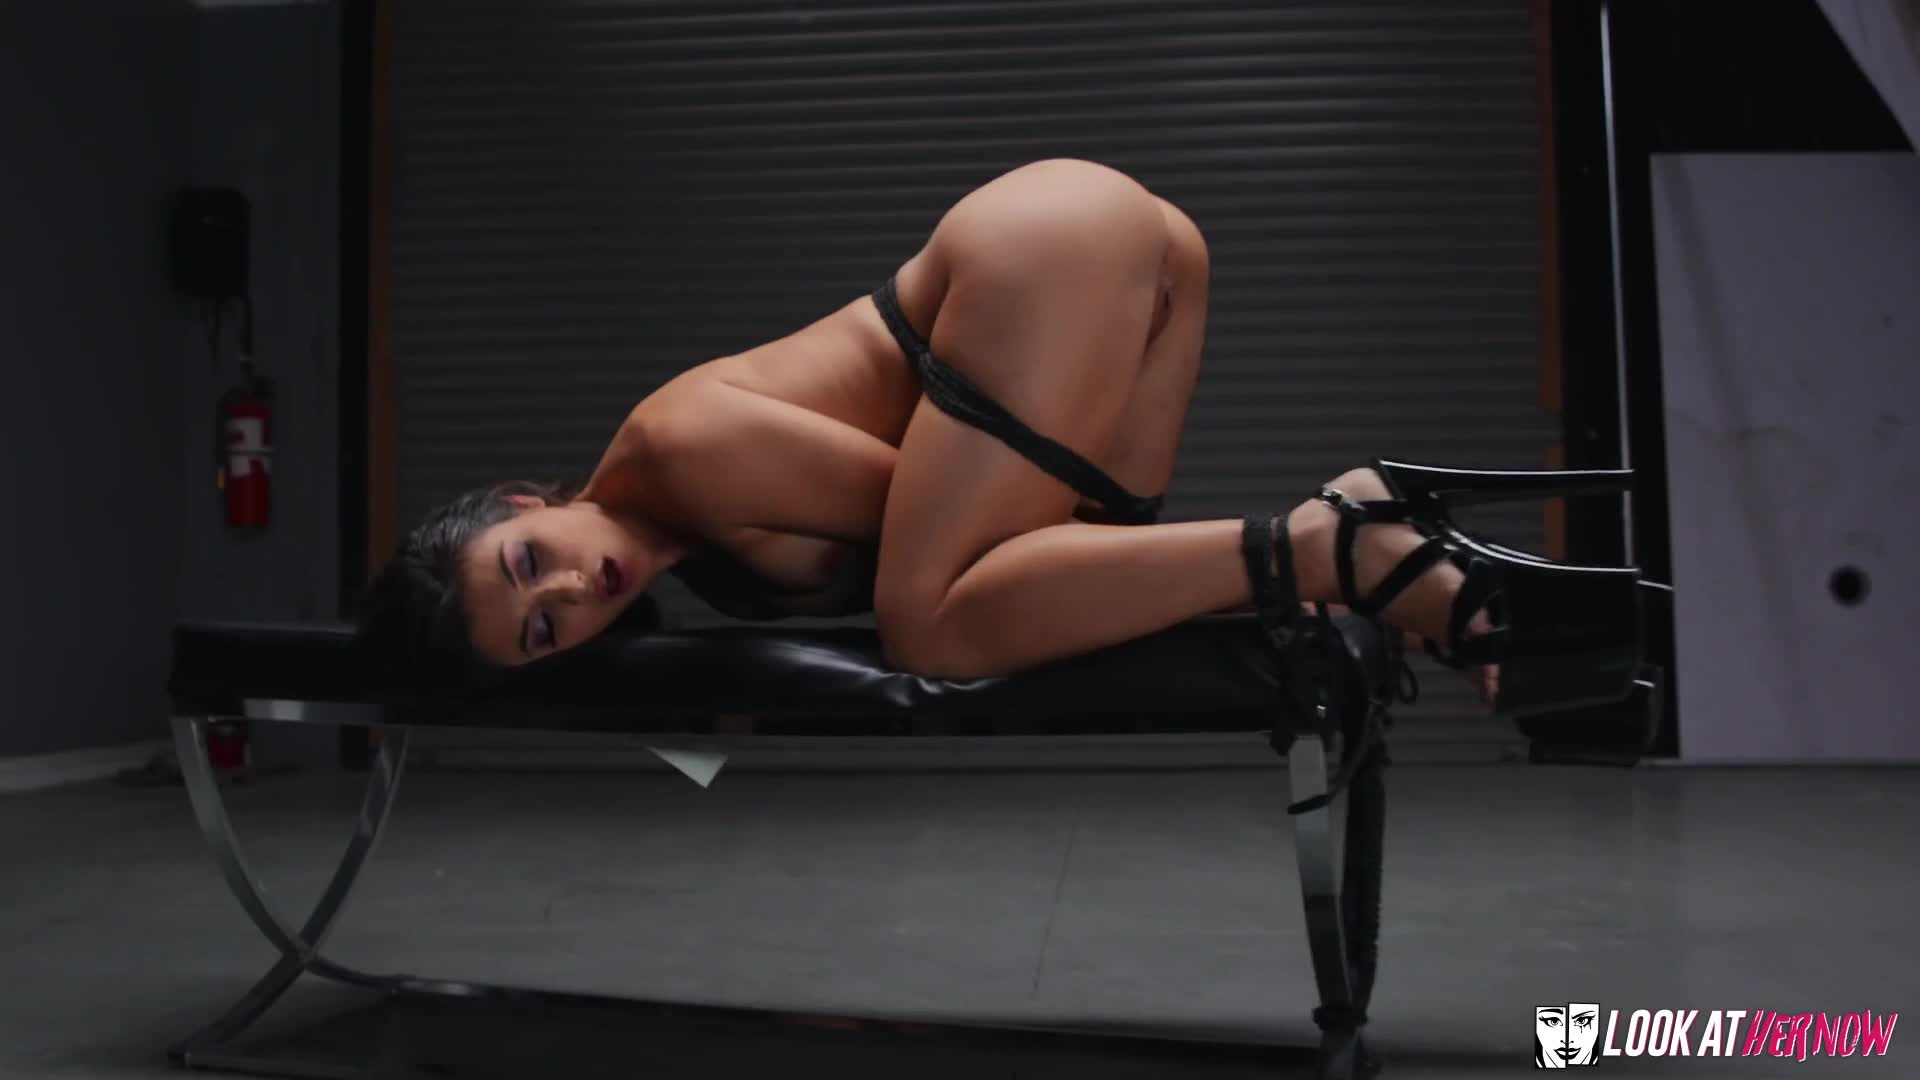 I'm not usually into bondage or stripper heels, but this is pretty sexy.